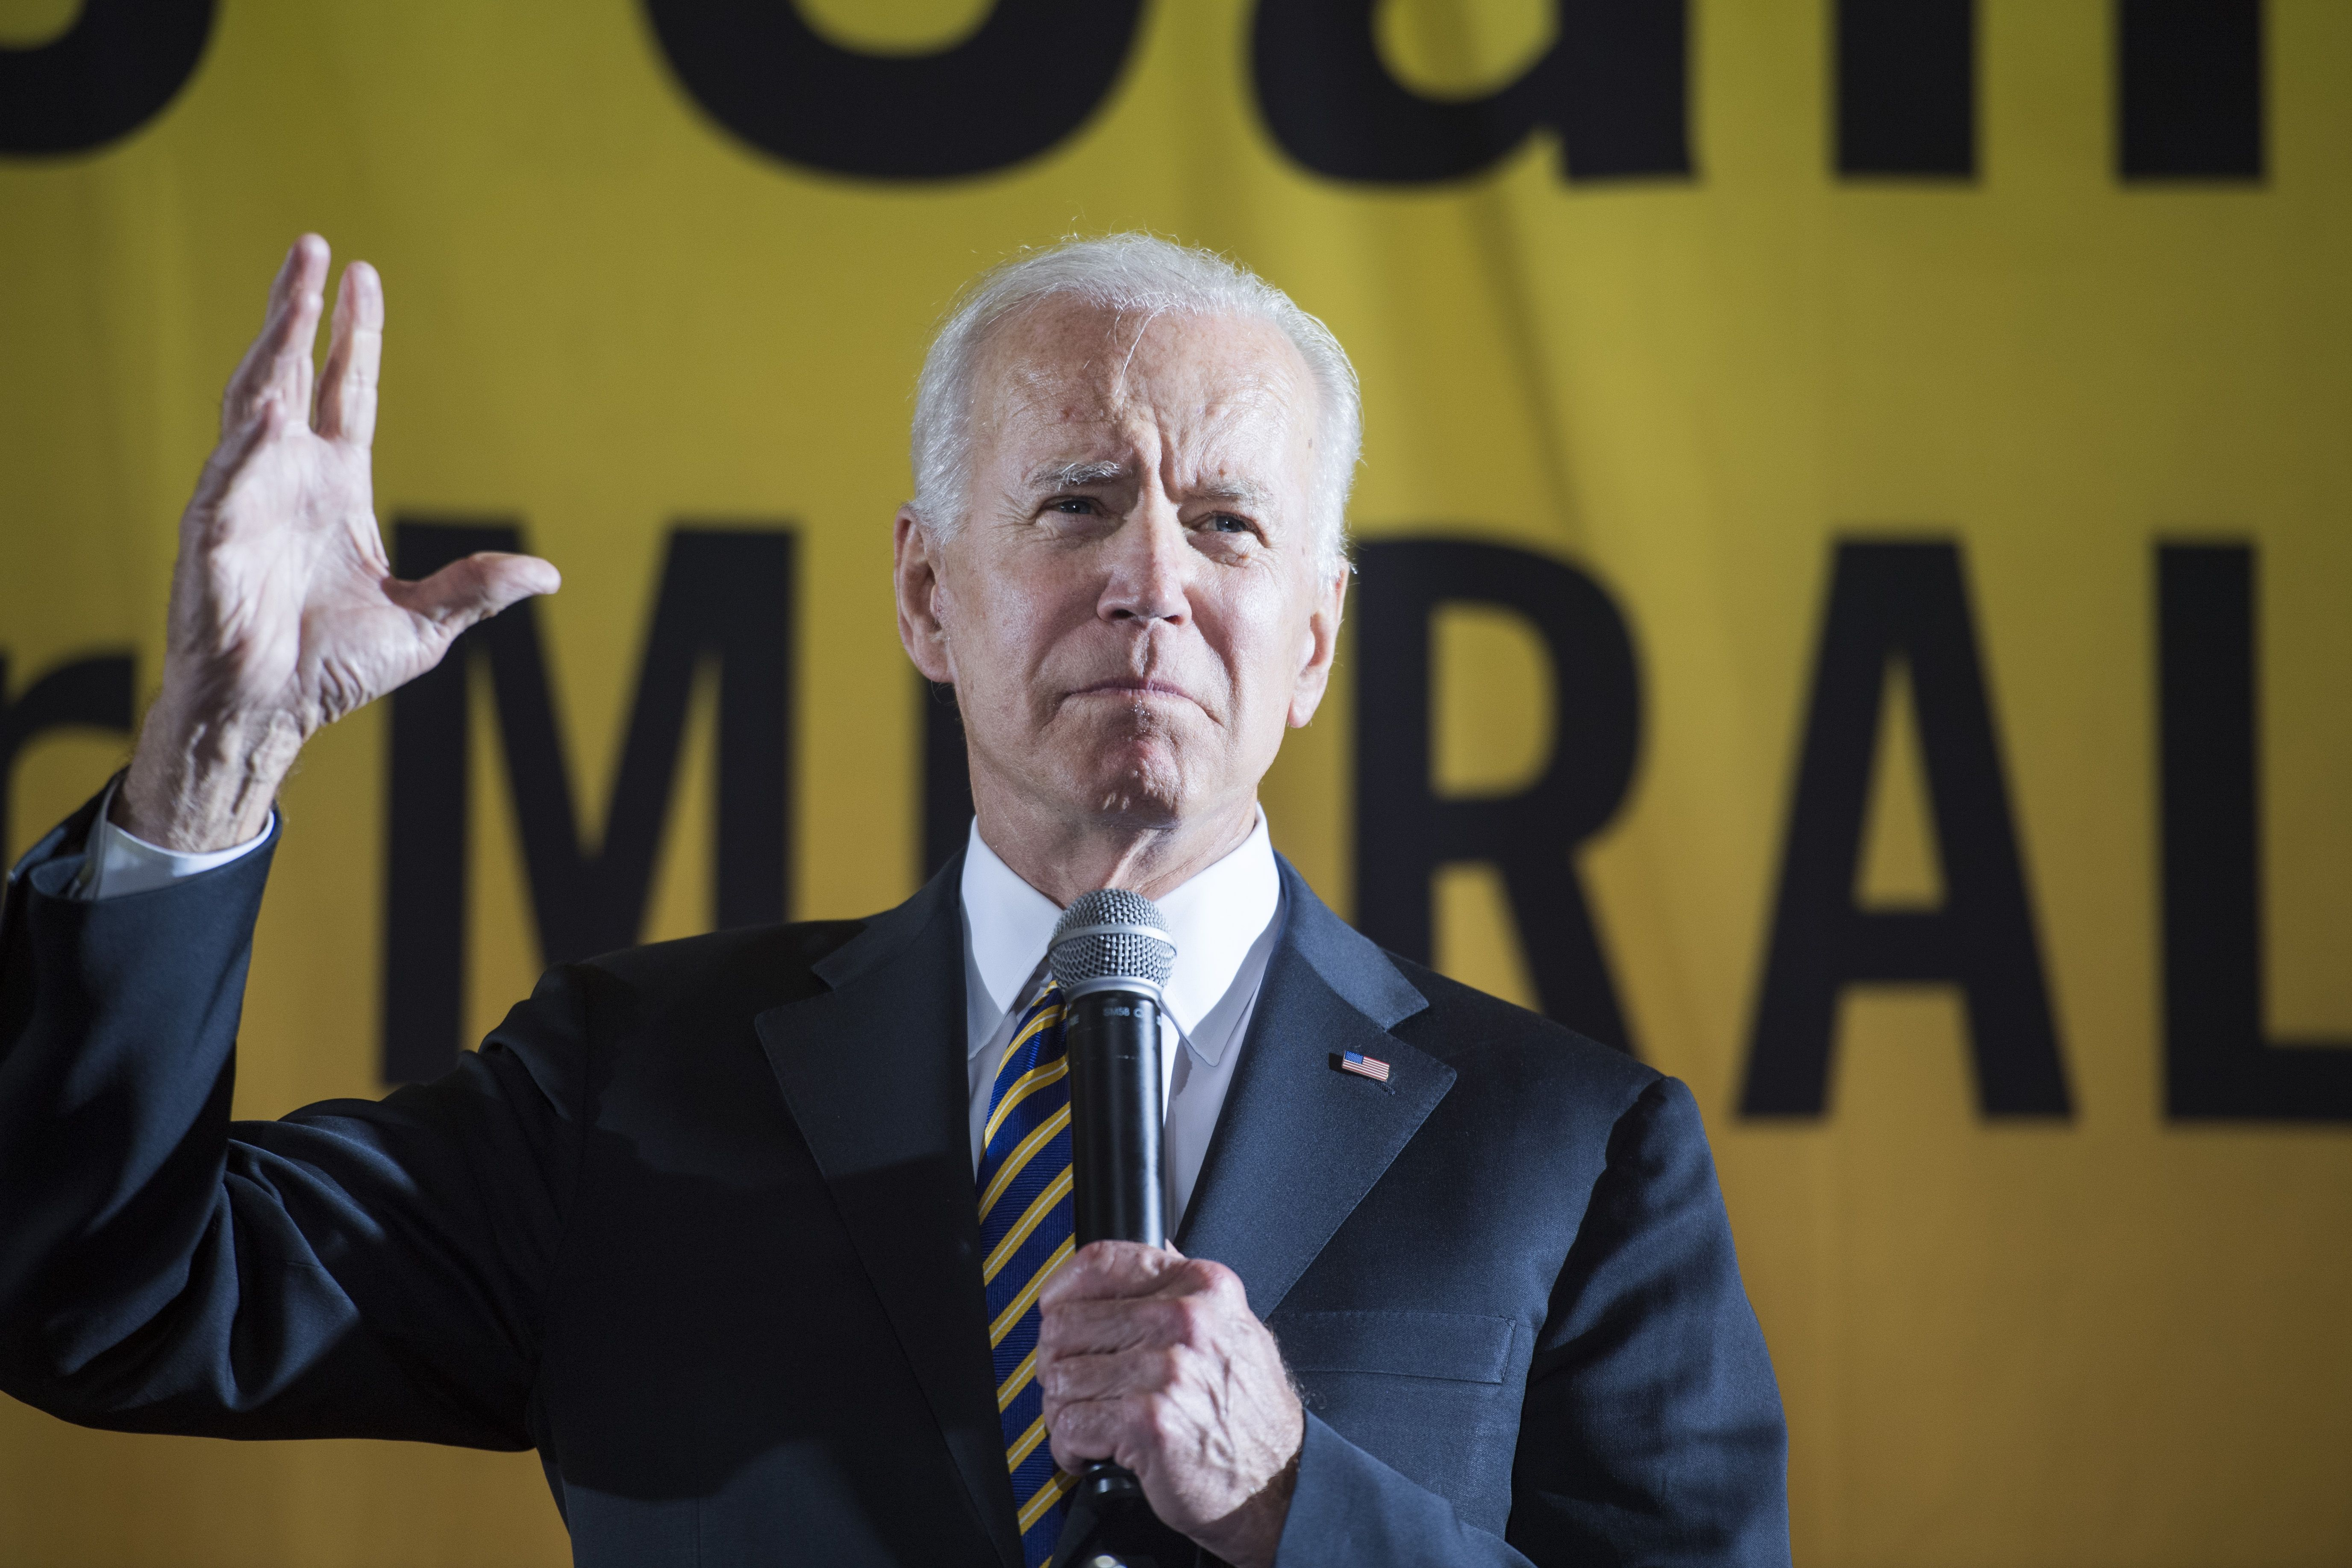 Joe Biden Is One of the Most Tone-Deaf Politicians in the History of Representative Government